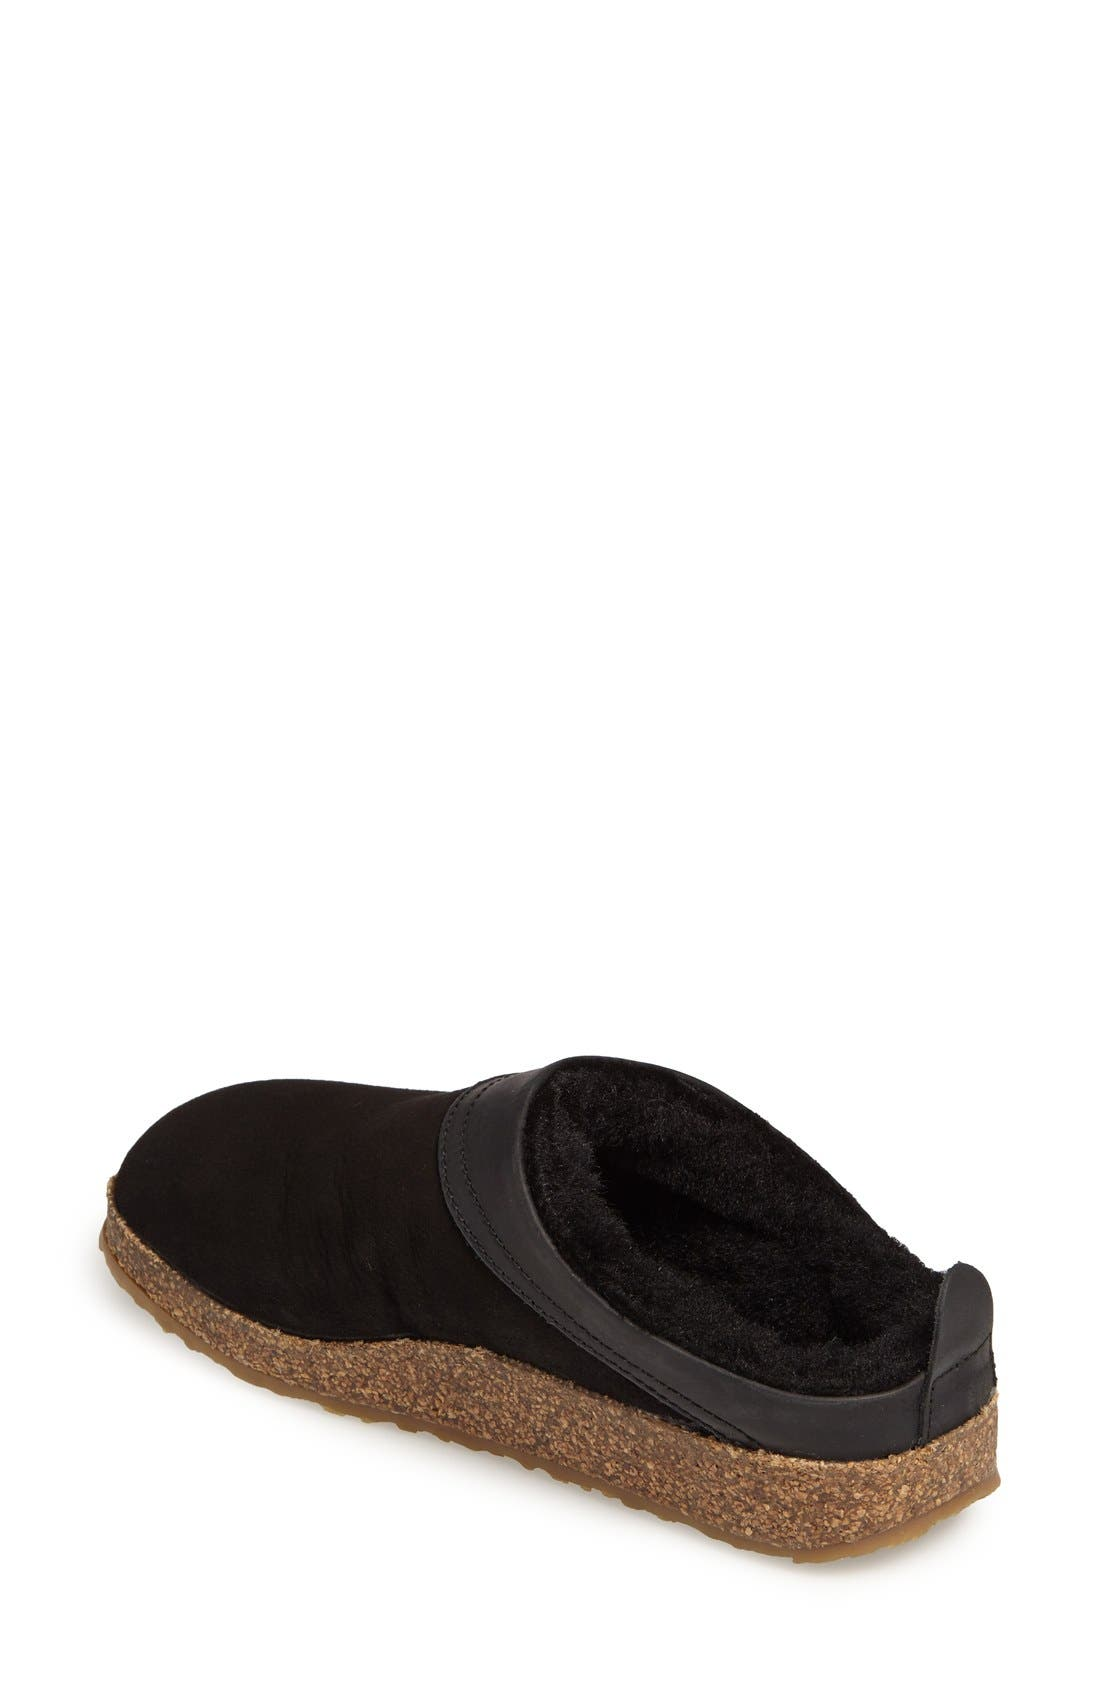 Alternate Image 2  - Haflinger Snowbird Genuine Shearling Slipper (Women)